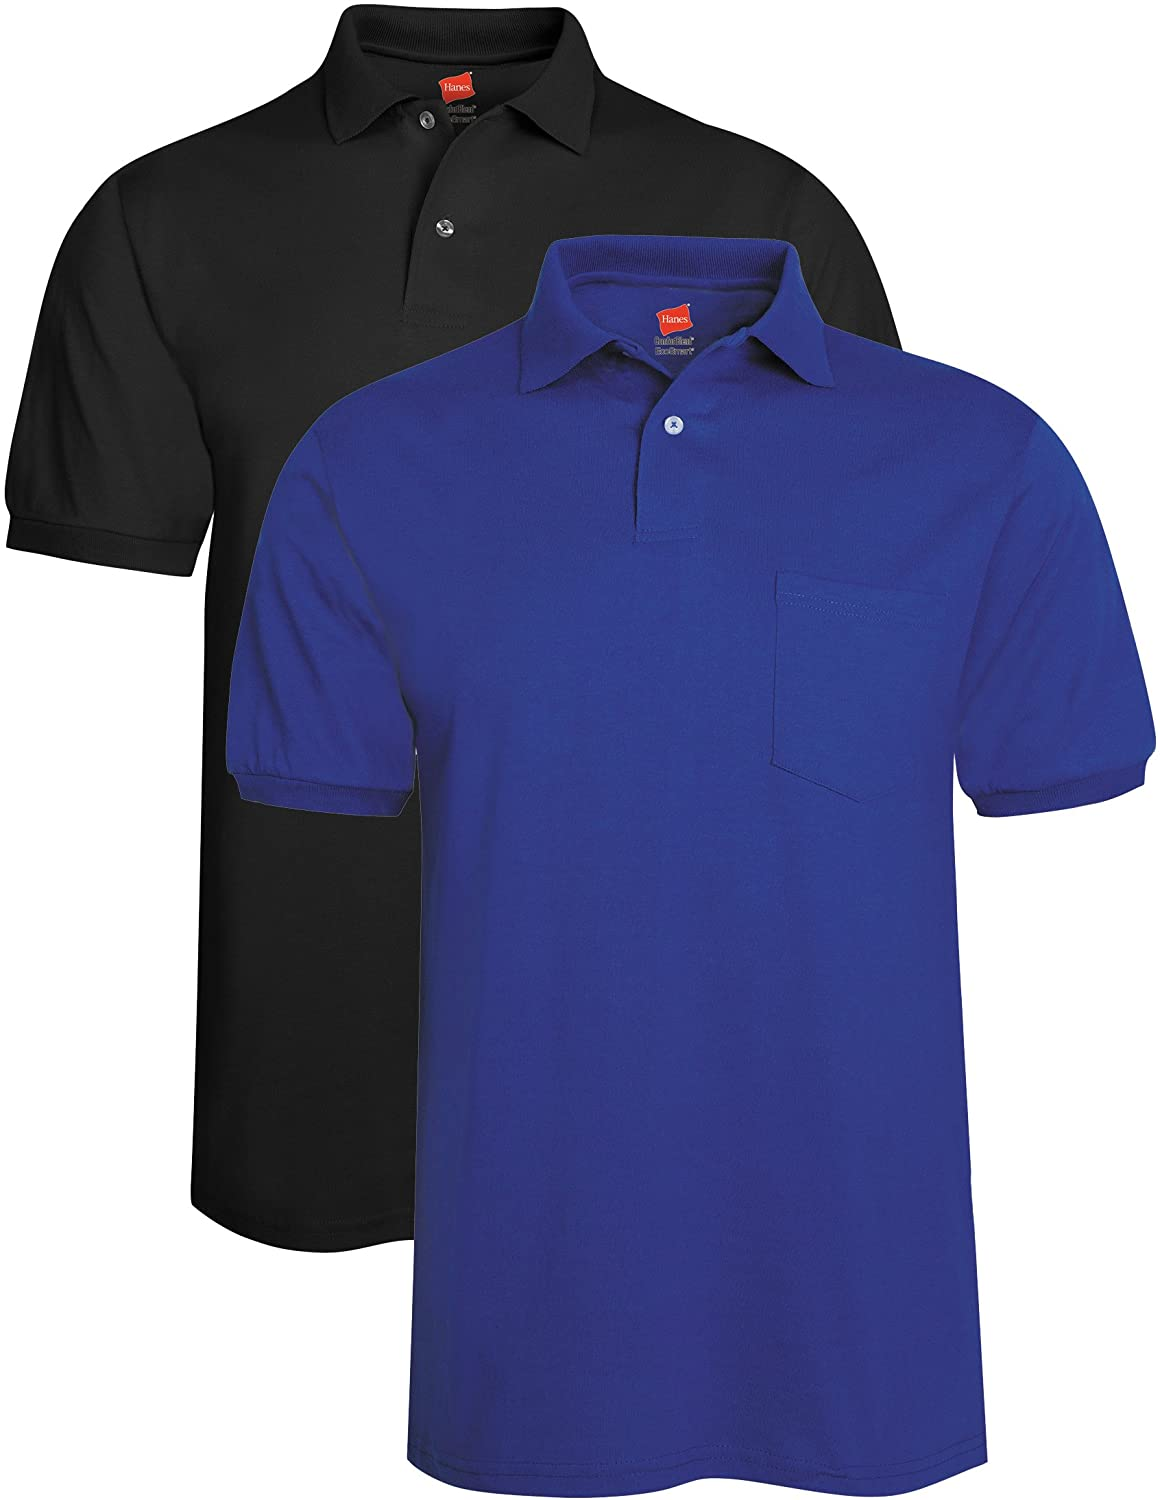 Hanes Men's 2 Pack Short Sleeve Jersey Pocket Polo, Black/Deep Royal, Large